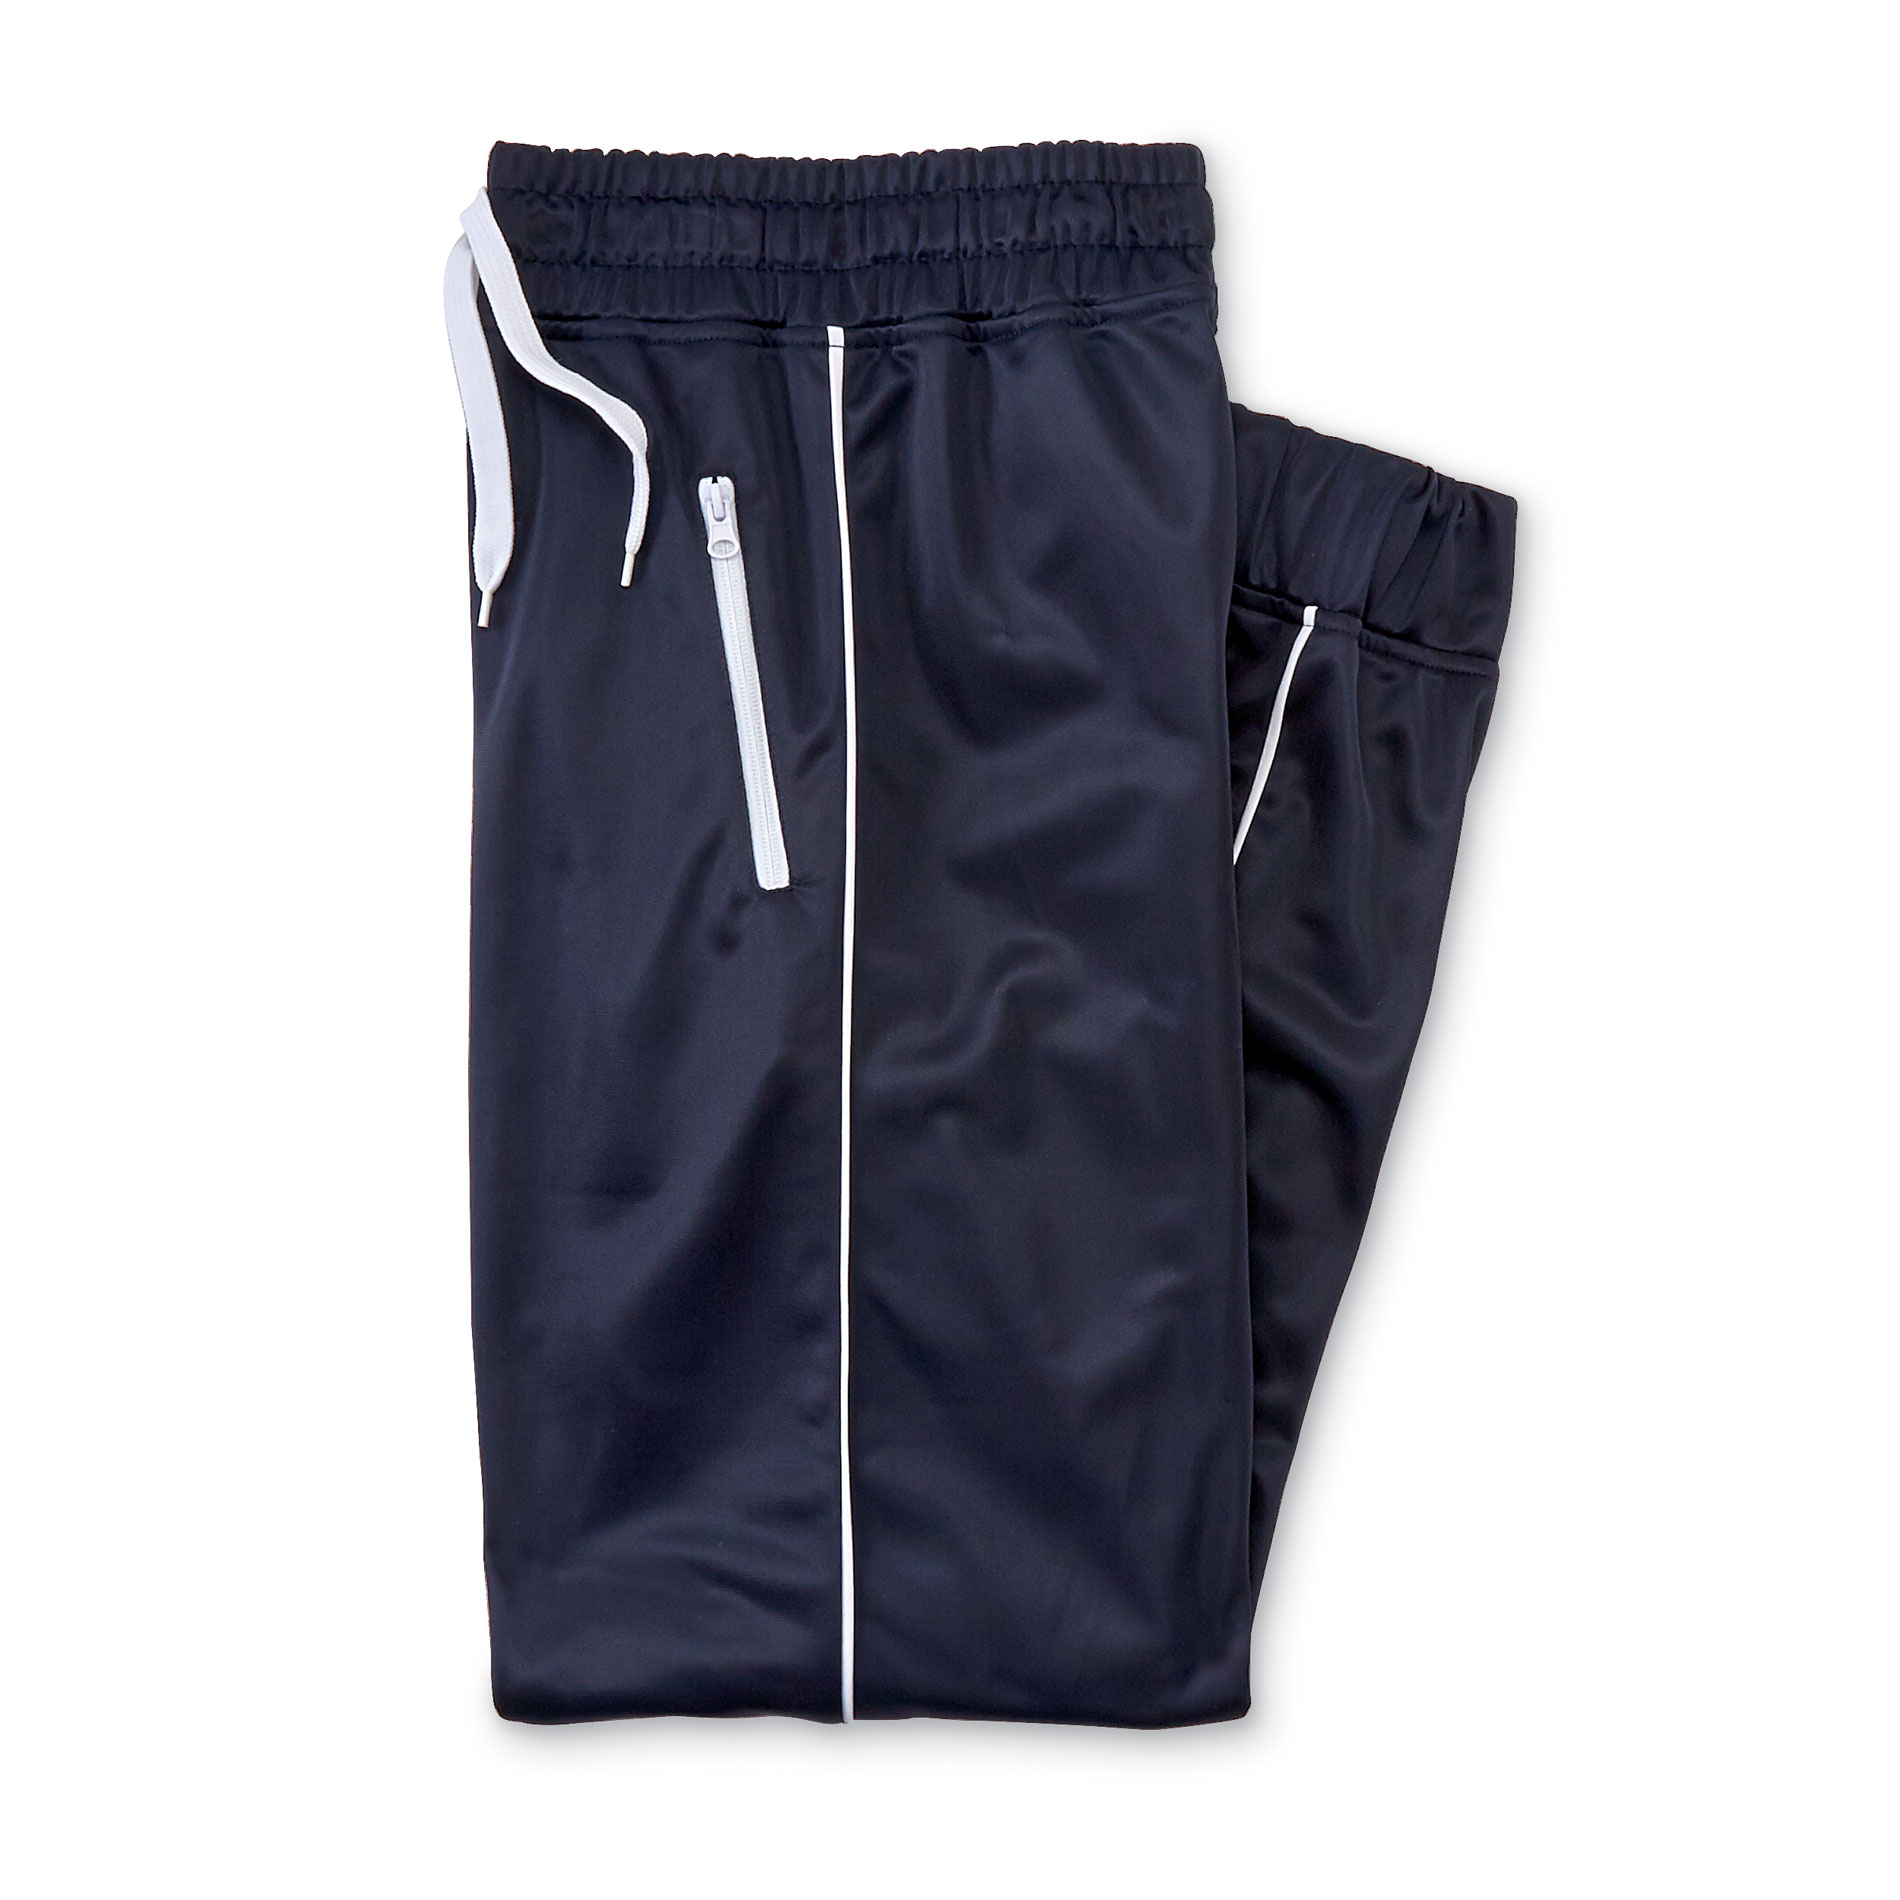 Baby Jogger Online Store Athletech Men 39;s At Tricot Jogging Pants